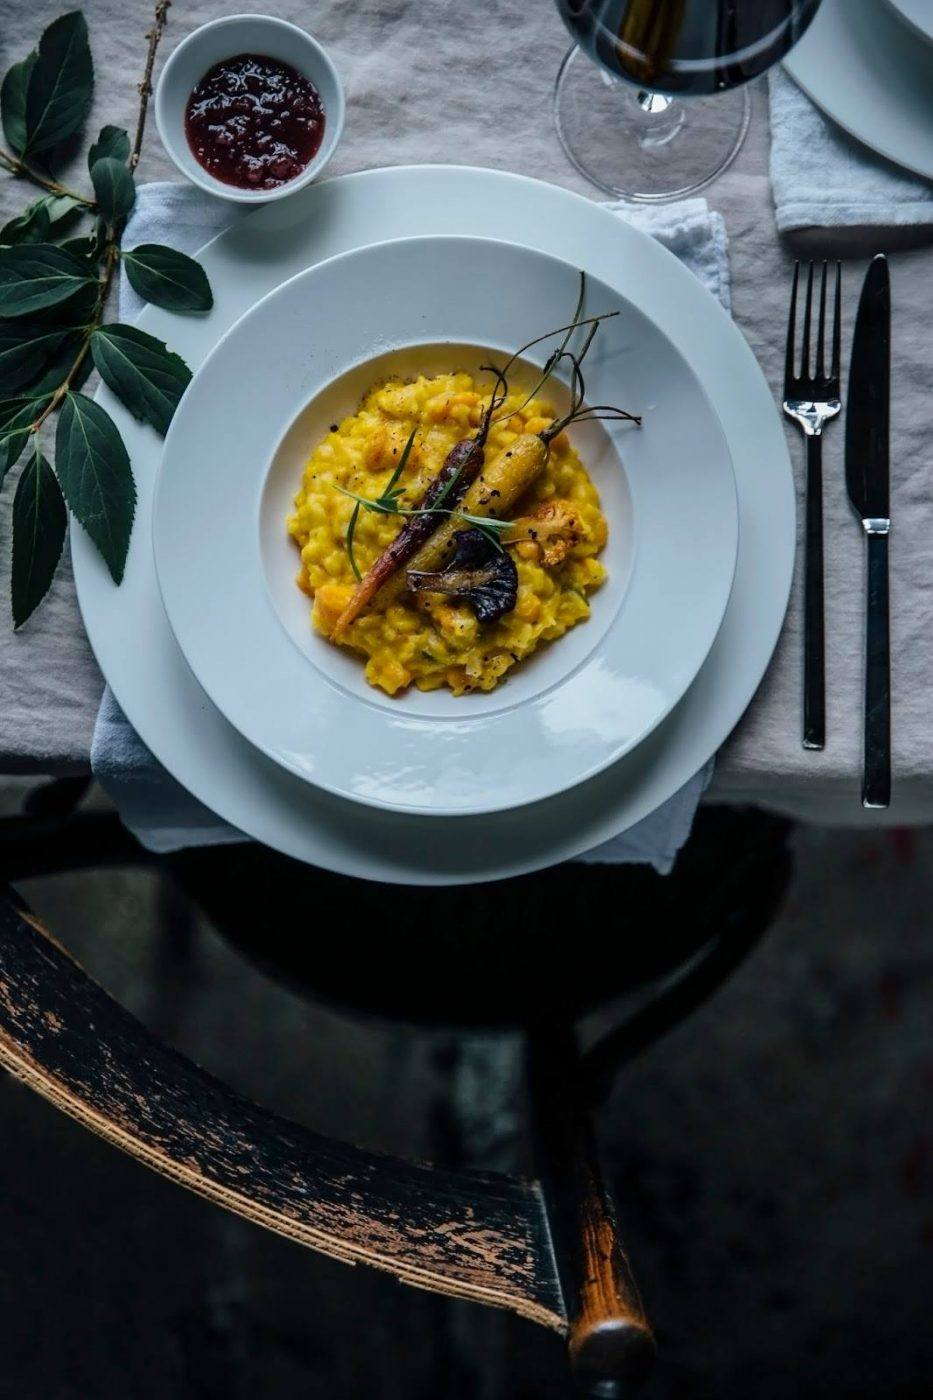 Image for Pumpkin-Risotto with caramelized Carrots and Cauliflowers: our third Gathering for Villeroy&Boch